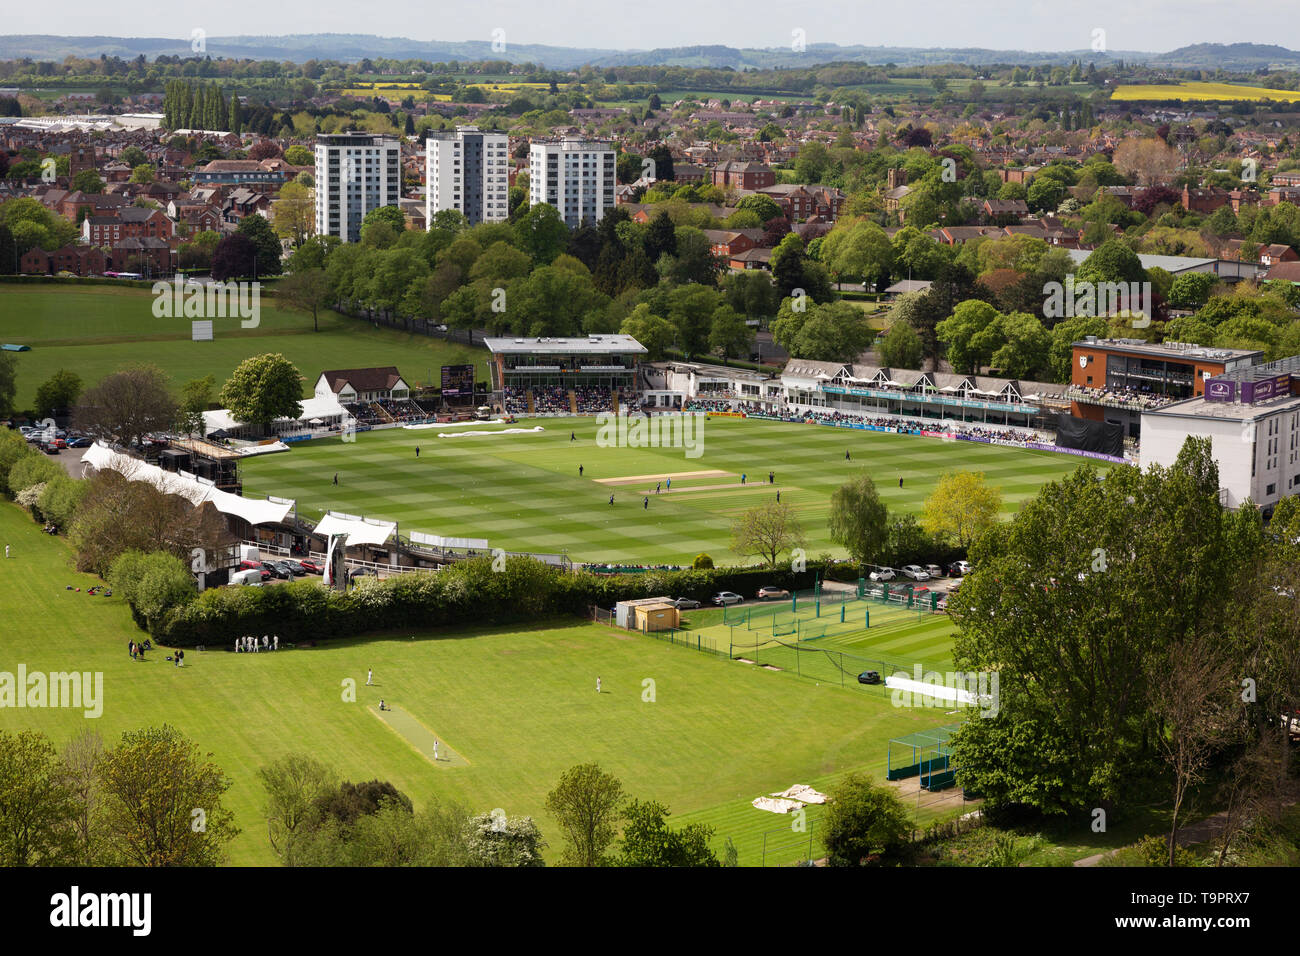 Worcestershire County Cricket Club - an aerial view of the cricket ground and a cricket match, Worcester, Worcestershire England UK Stock Photo